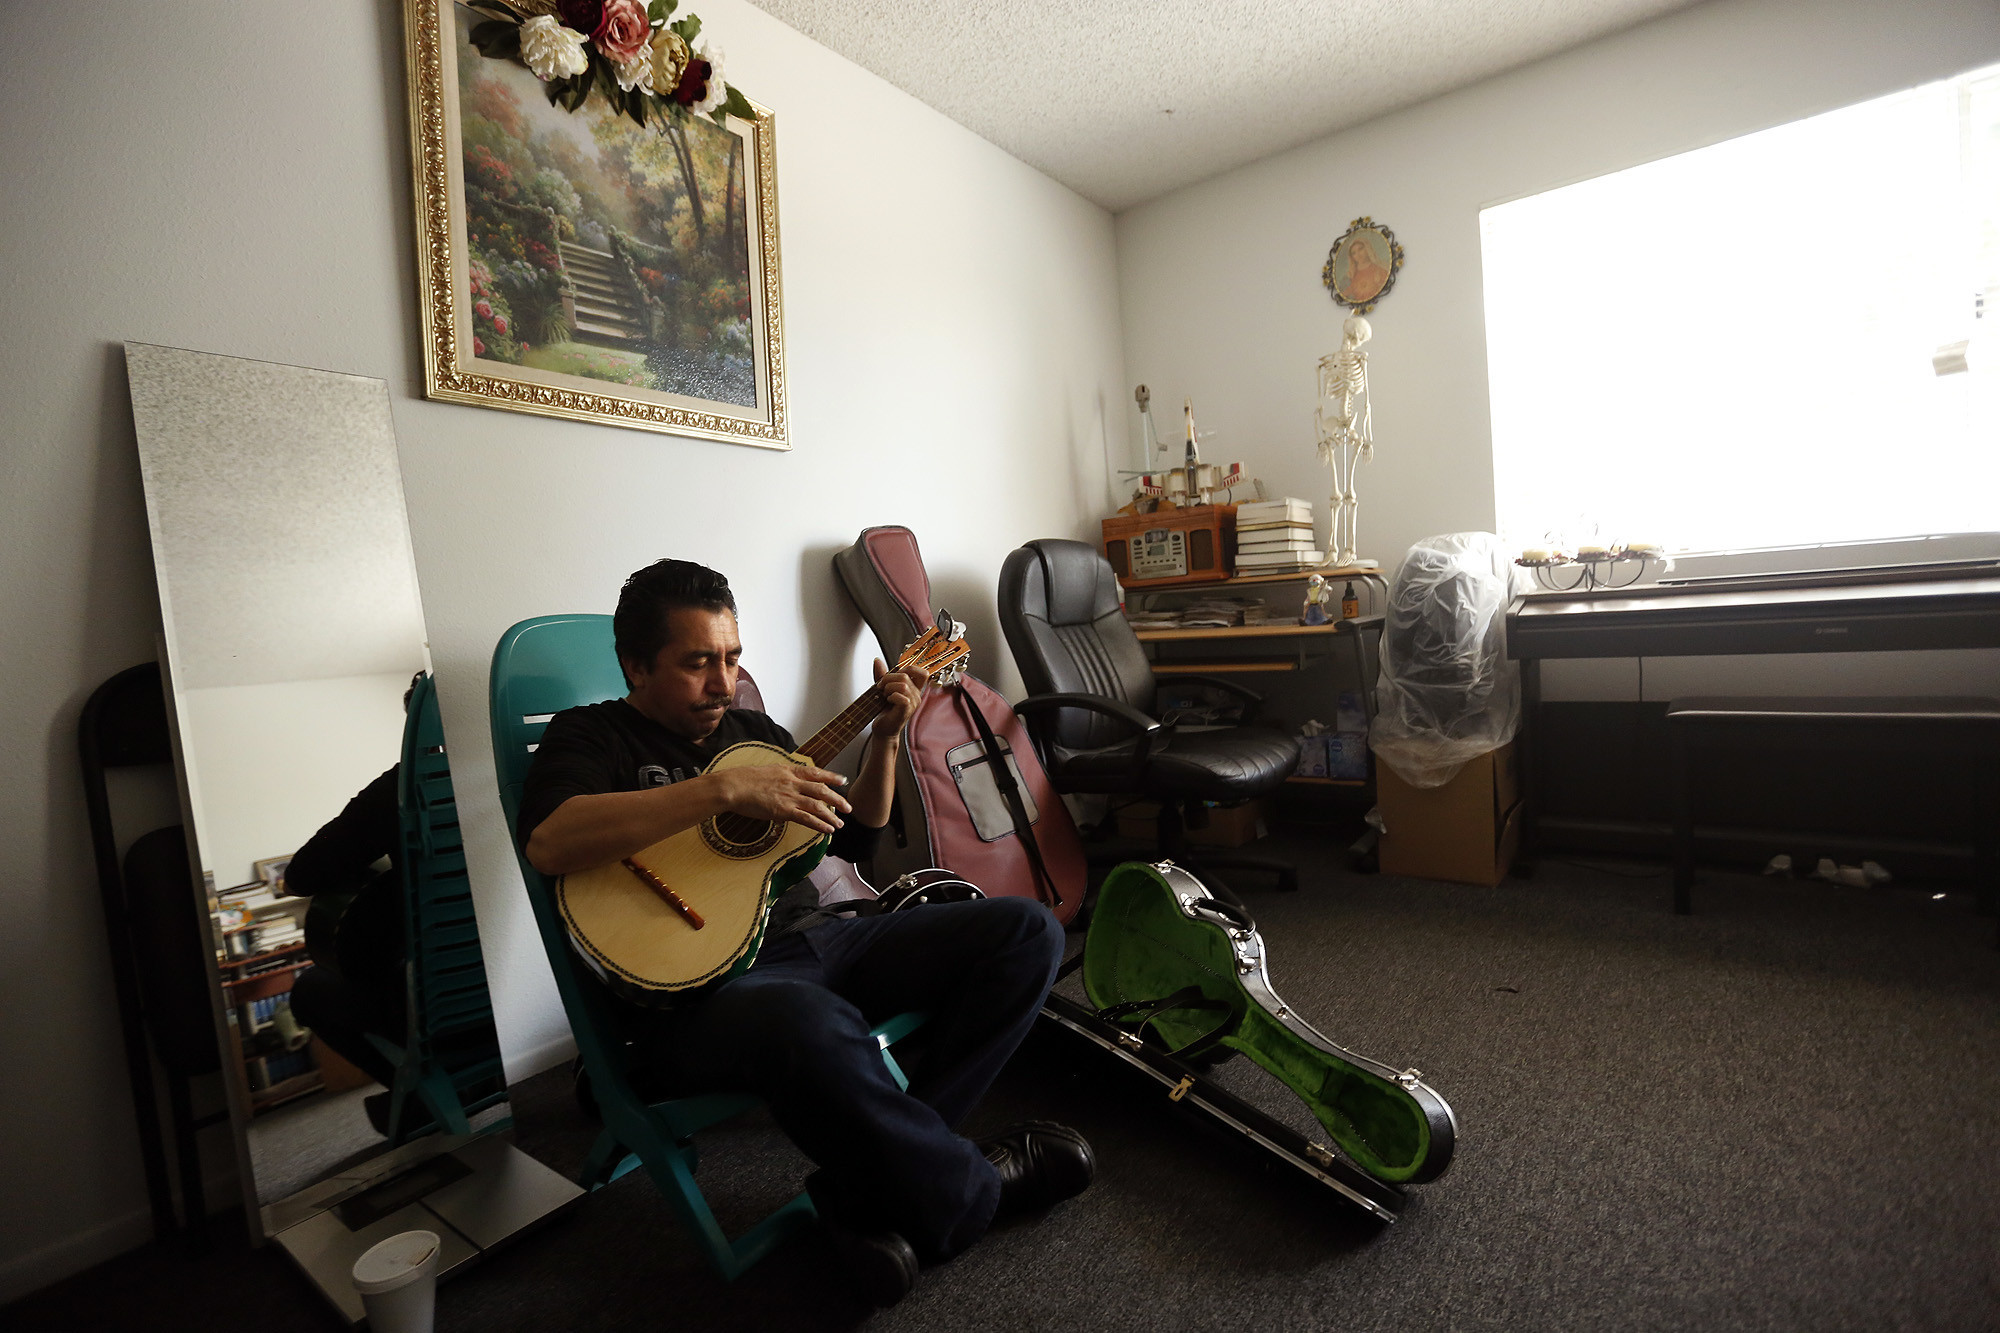 Mariachi performer Luis Valdivia practices in his apartment in Boyle Heights. Valdivia and his brother, Enrique, face eviction because they are unable to keep up with an 80% rise in rent.